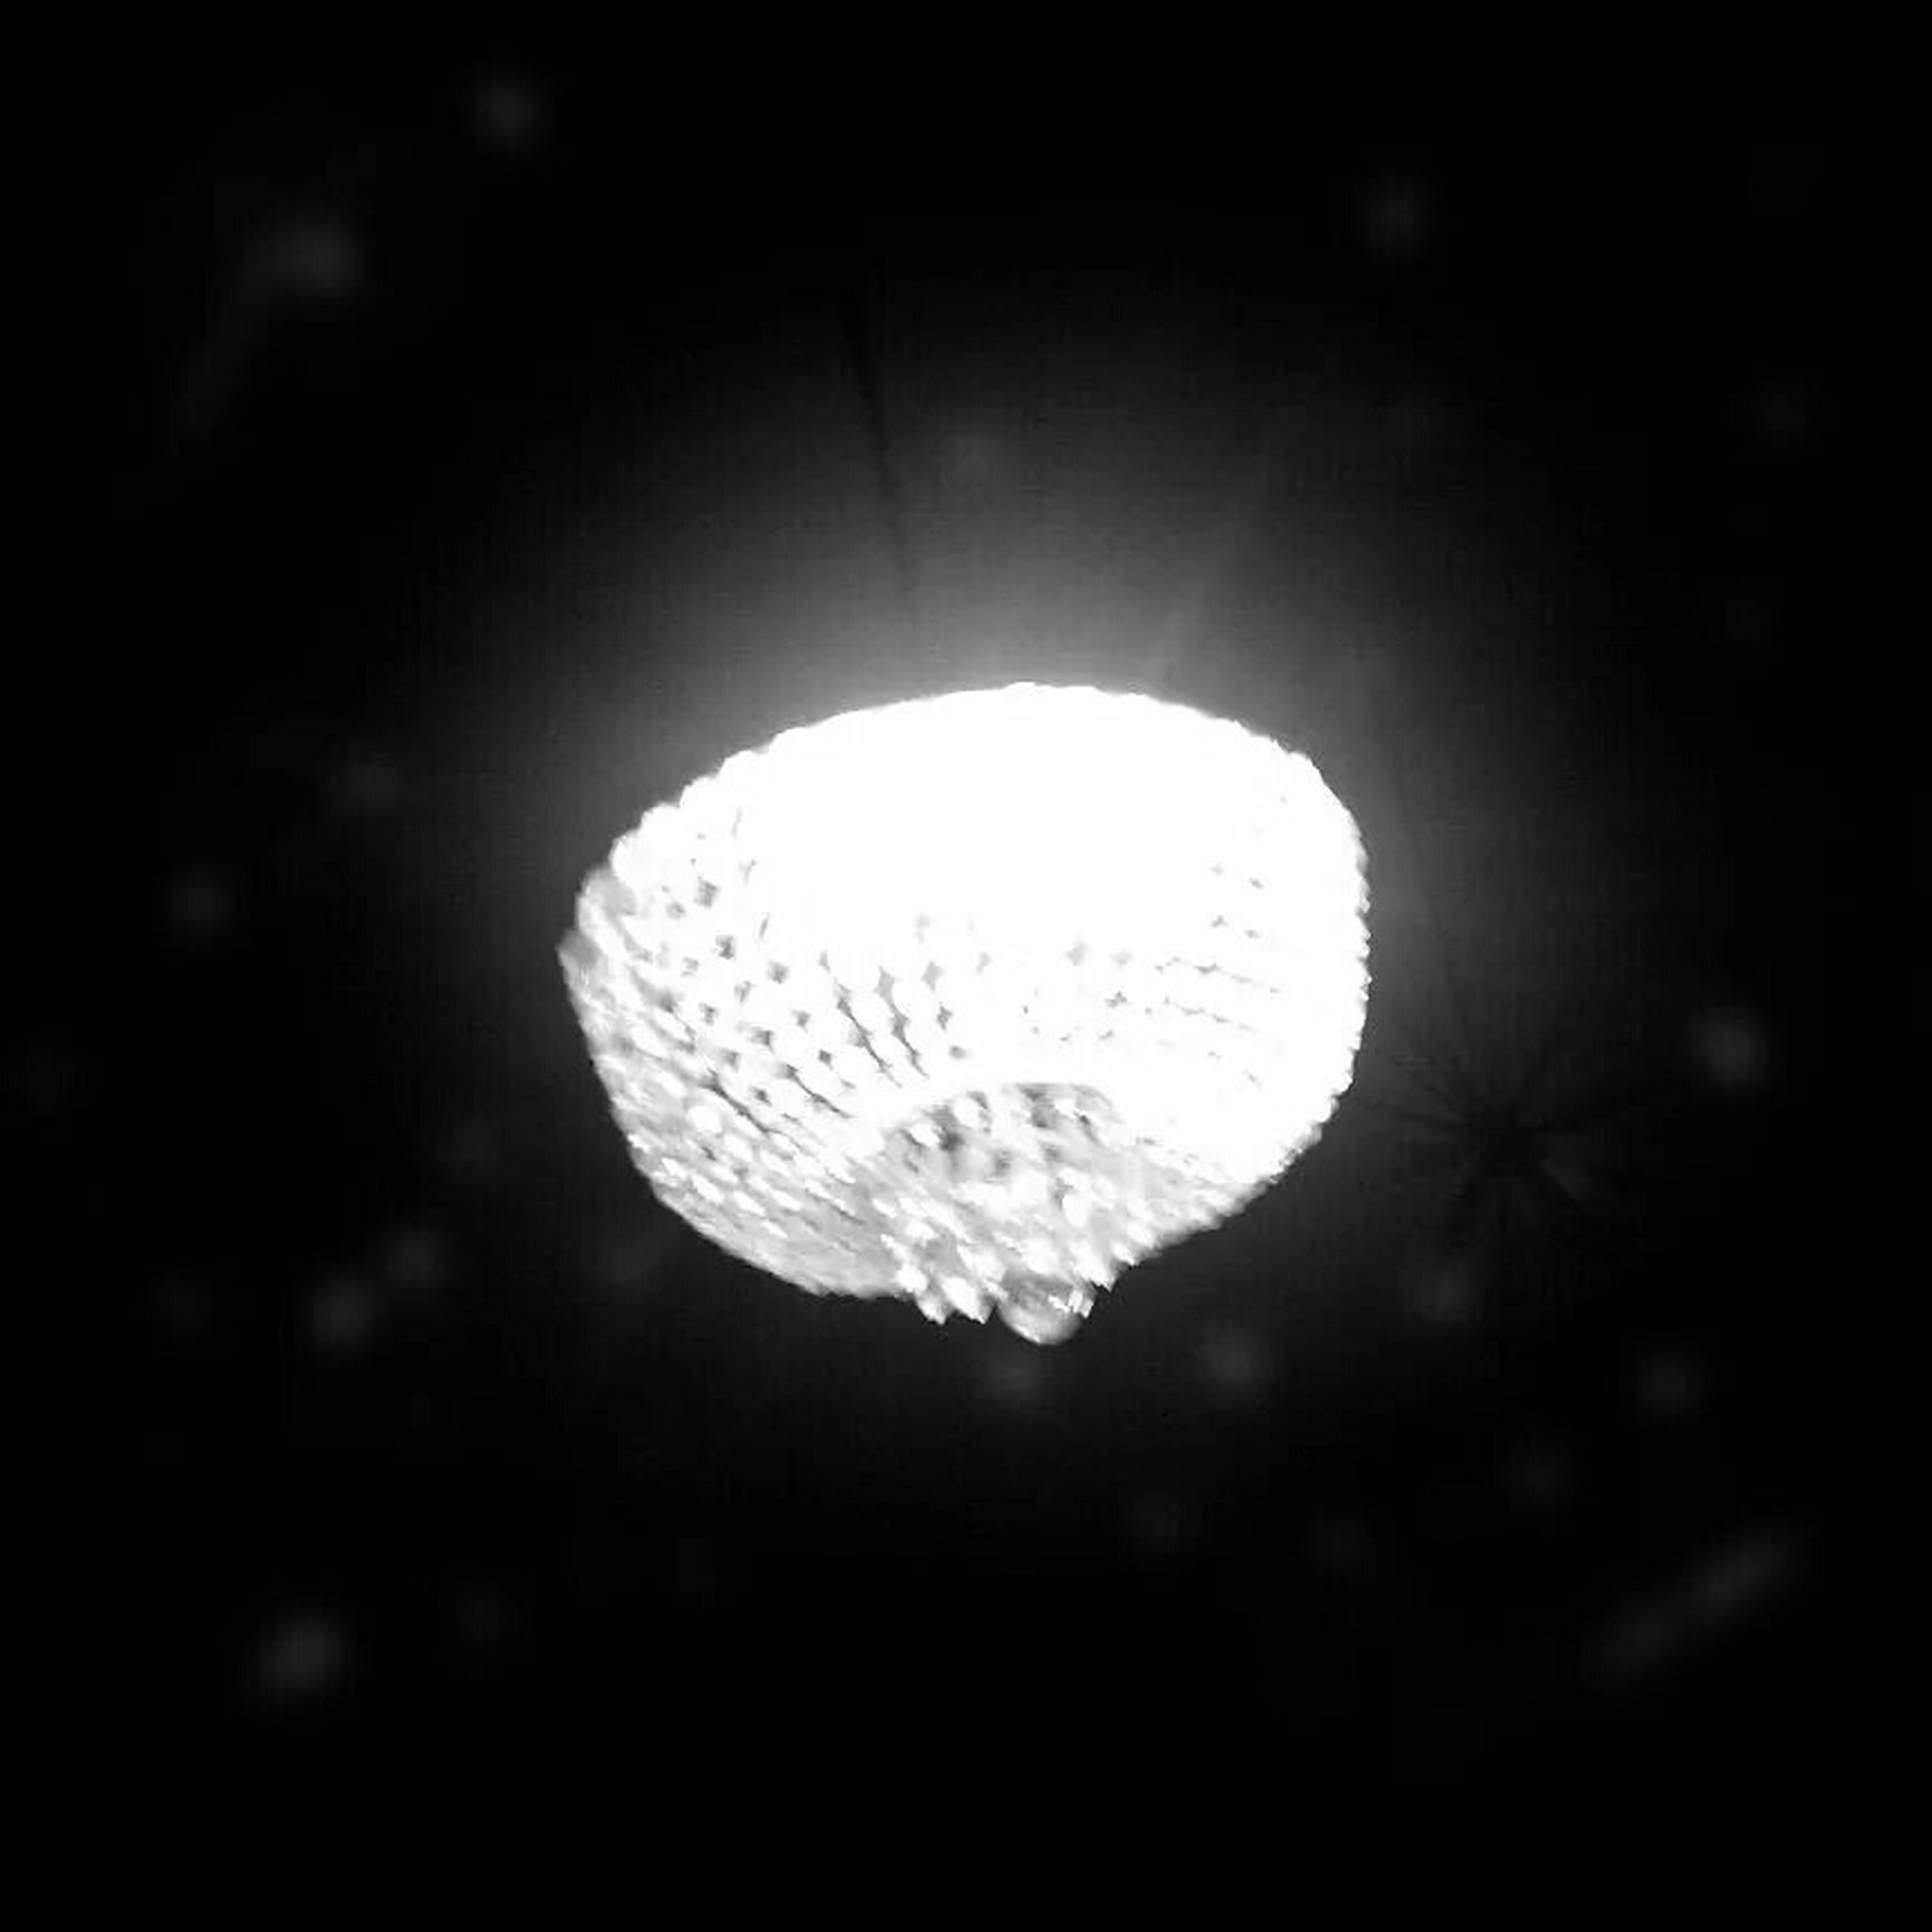 illuminated, night, close-up, lighting equipment, electricity, dark, circle, low angle view, focus on foreground, hanging, no people, indoors, sphere, glowing, ceiling, nature, pattern, electric light, shape, light - natural phenomenon